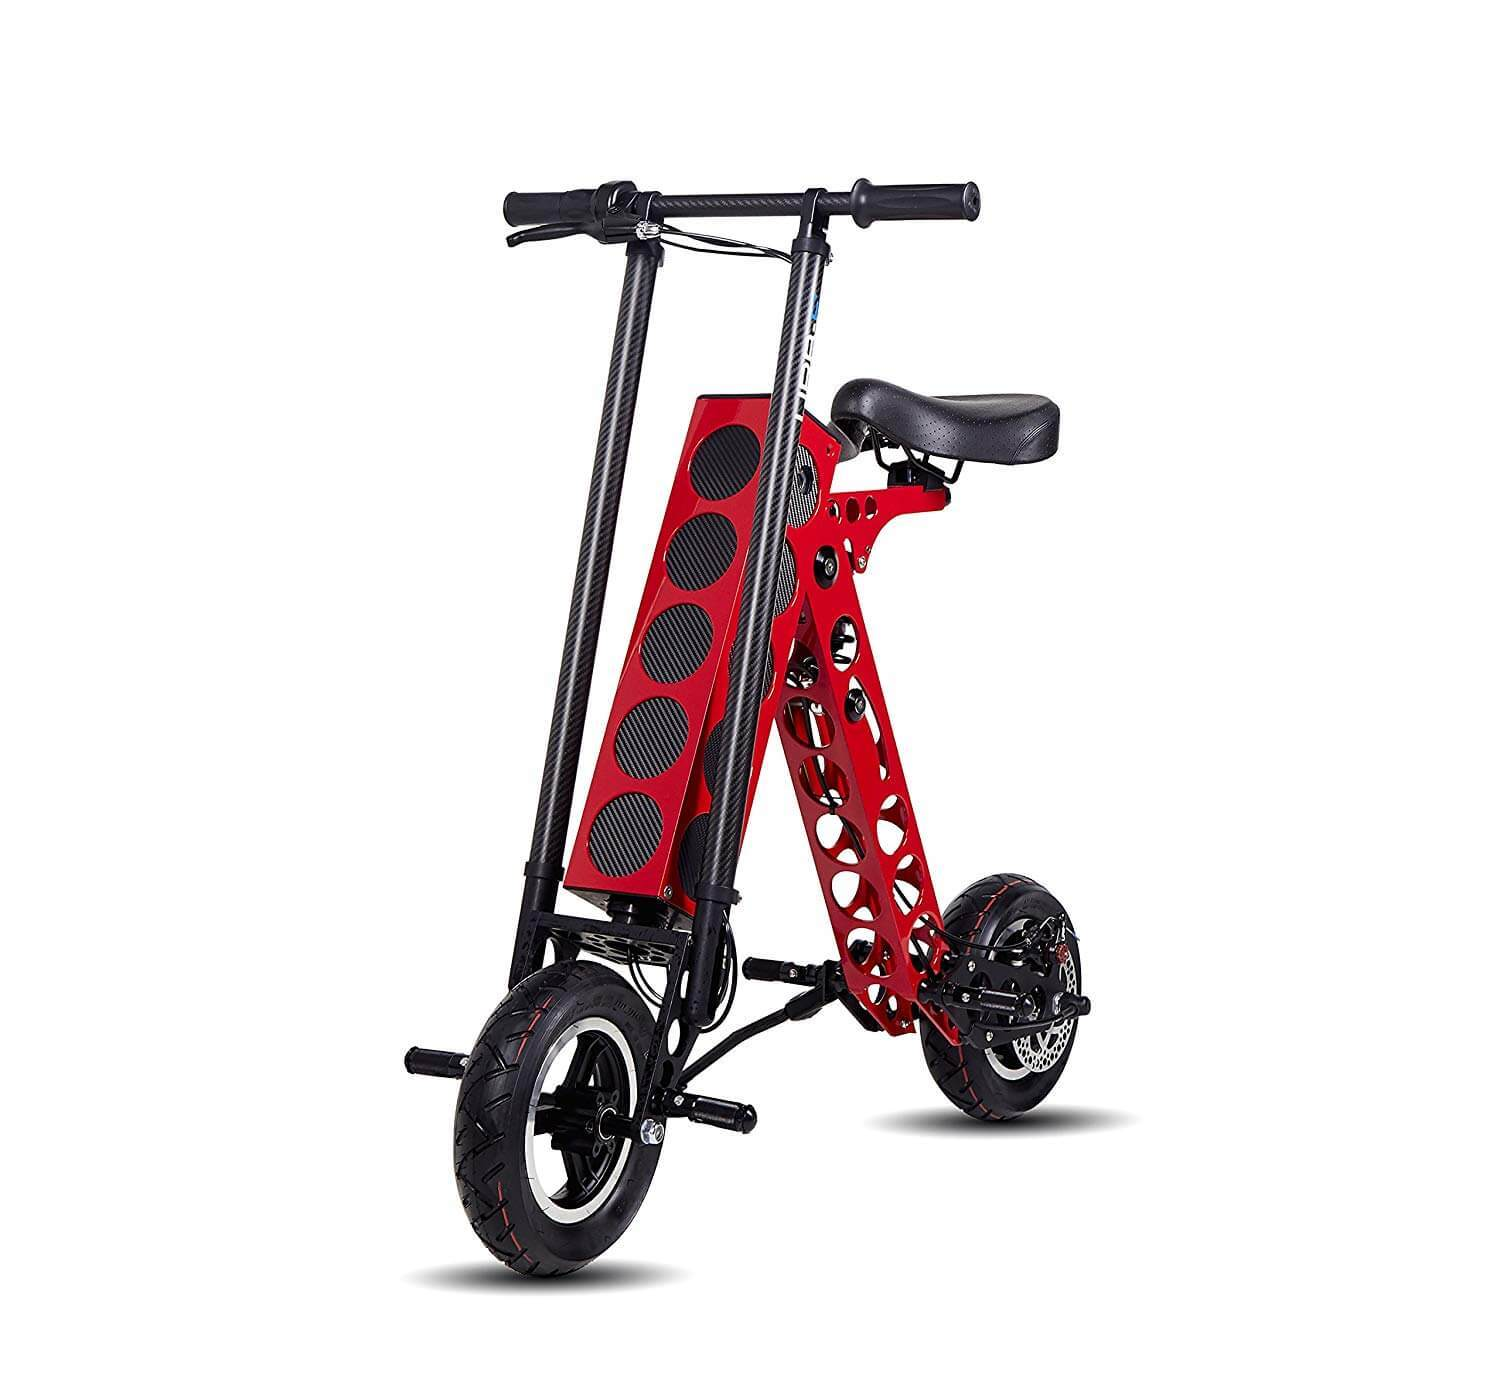 This is URB-E e scooter in red color with seat and suspension.